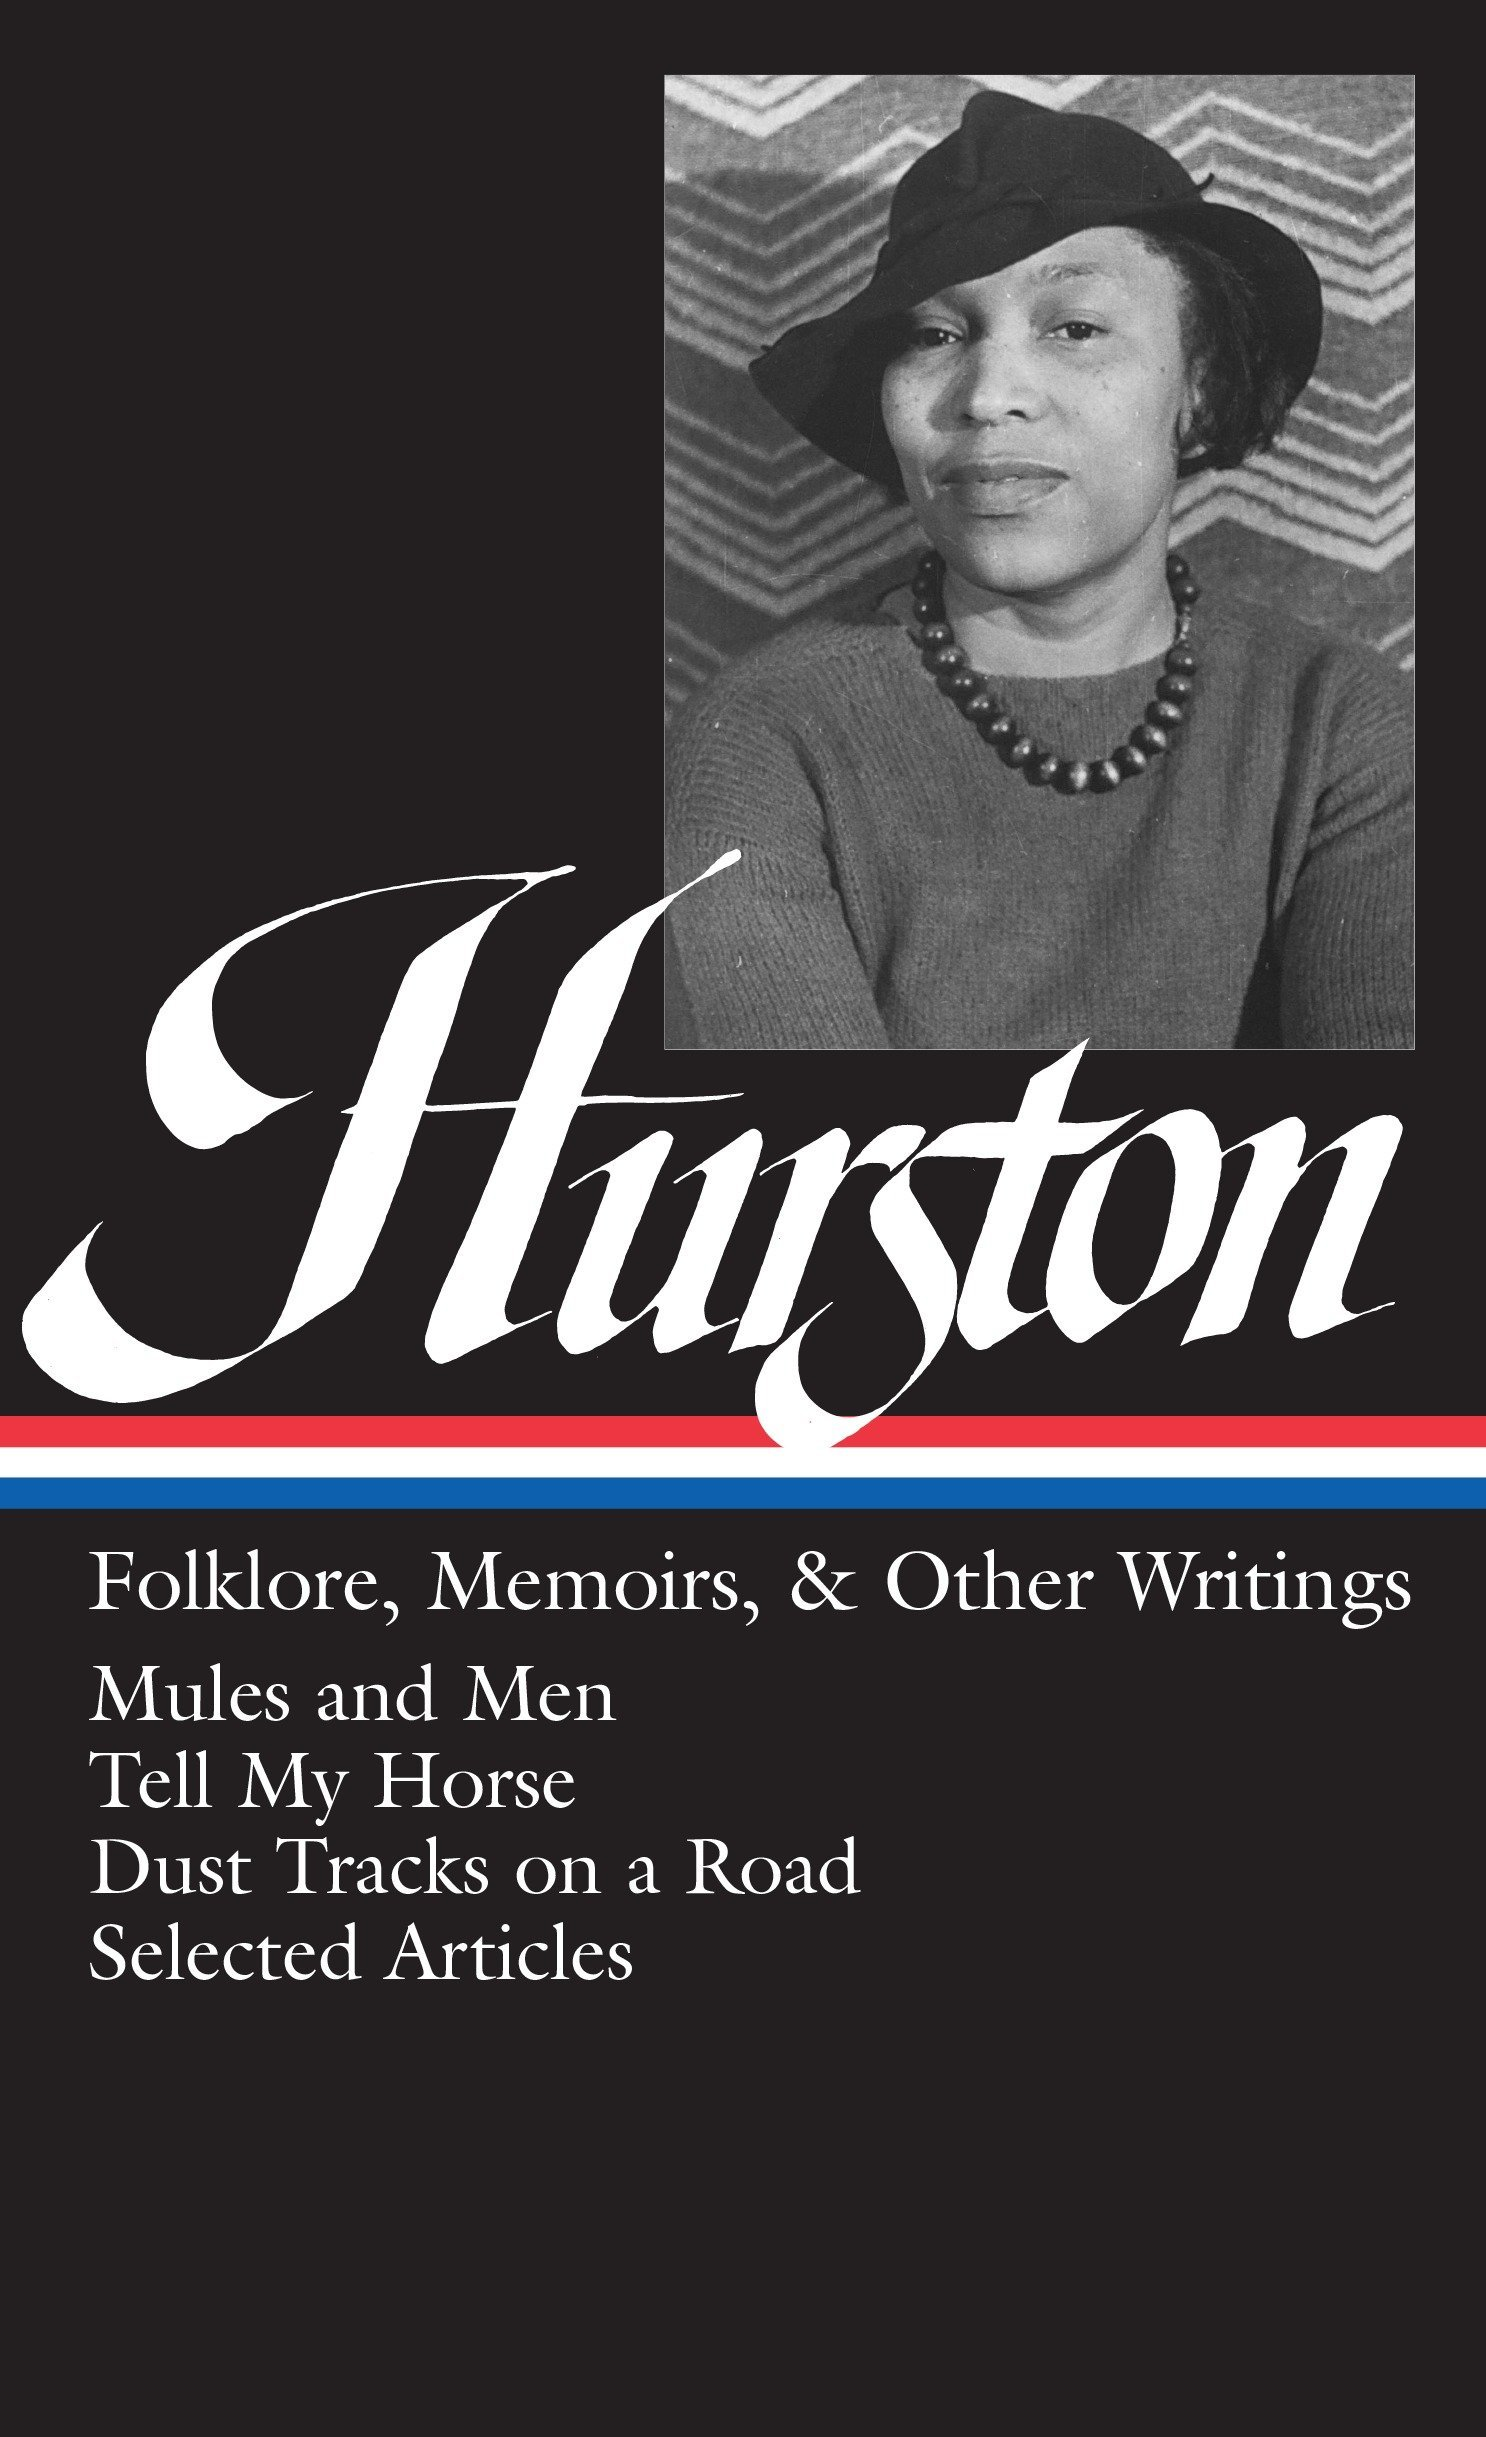 Zora Neale Hurston : Folklore, Memoirs, and Other Writings : Mules and Men, Tell My Horse, Dust Tracks on a Road, Selected Articles (The Library of America, 75) by Library of America